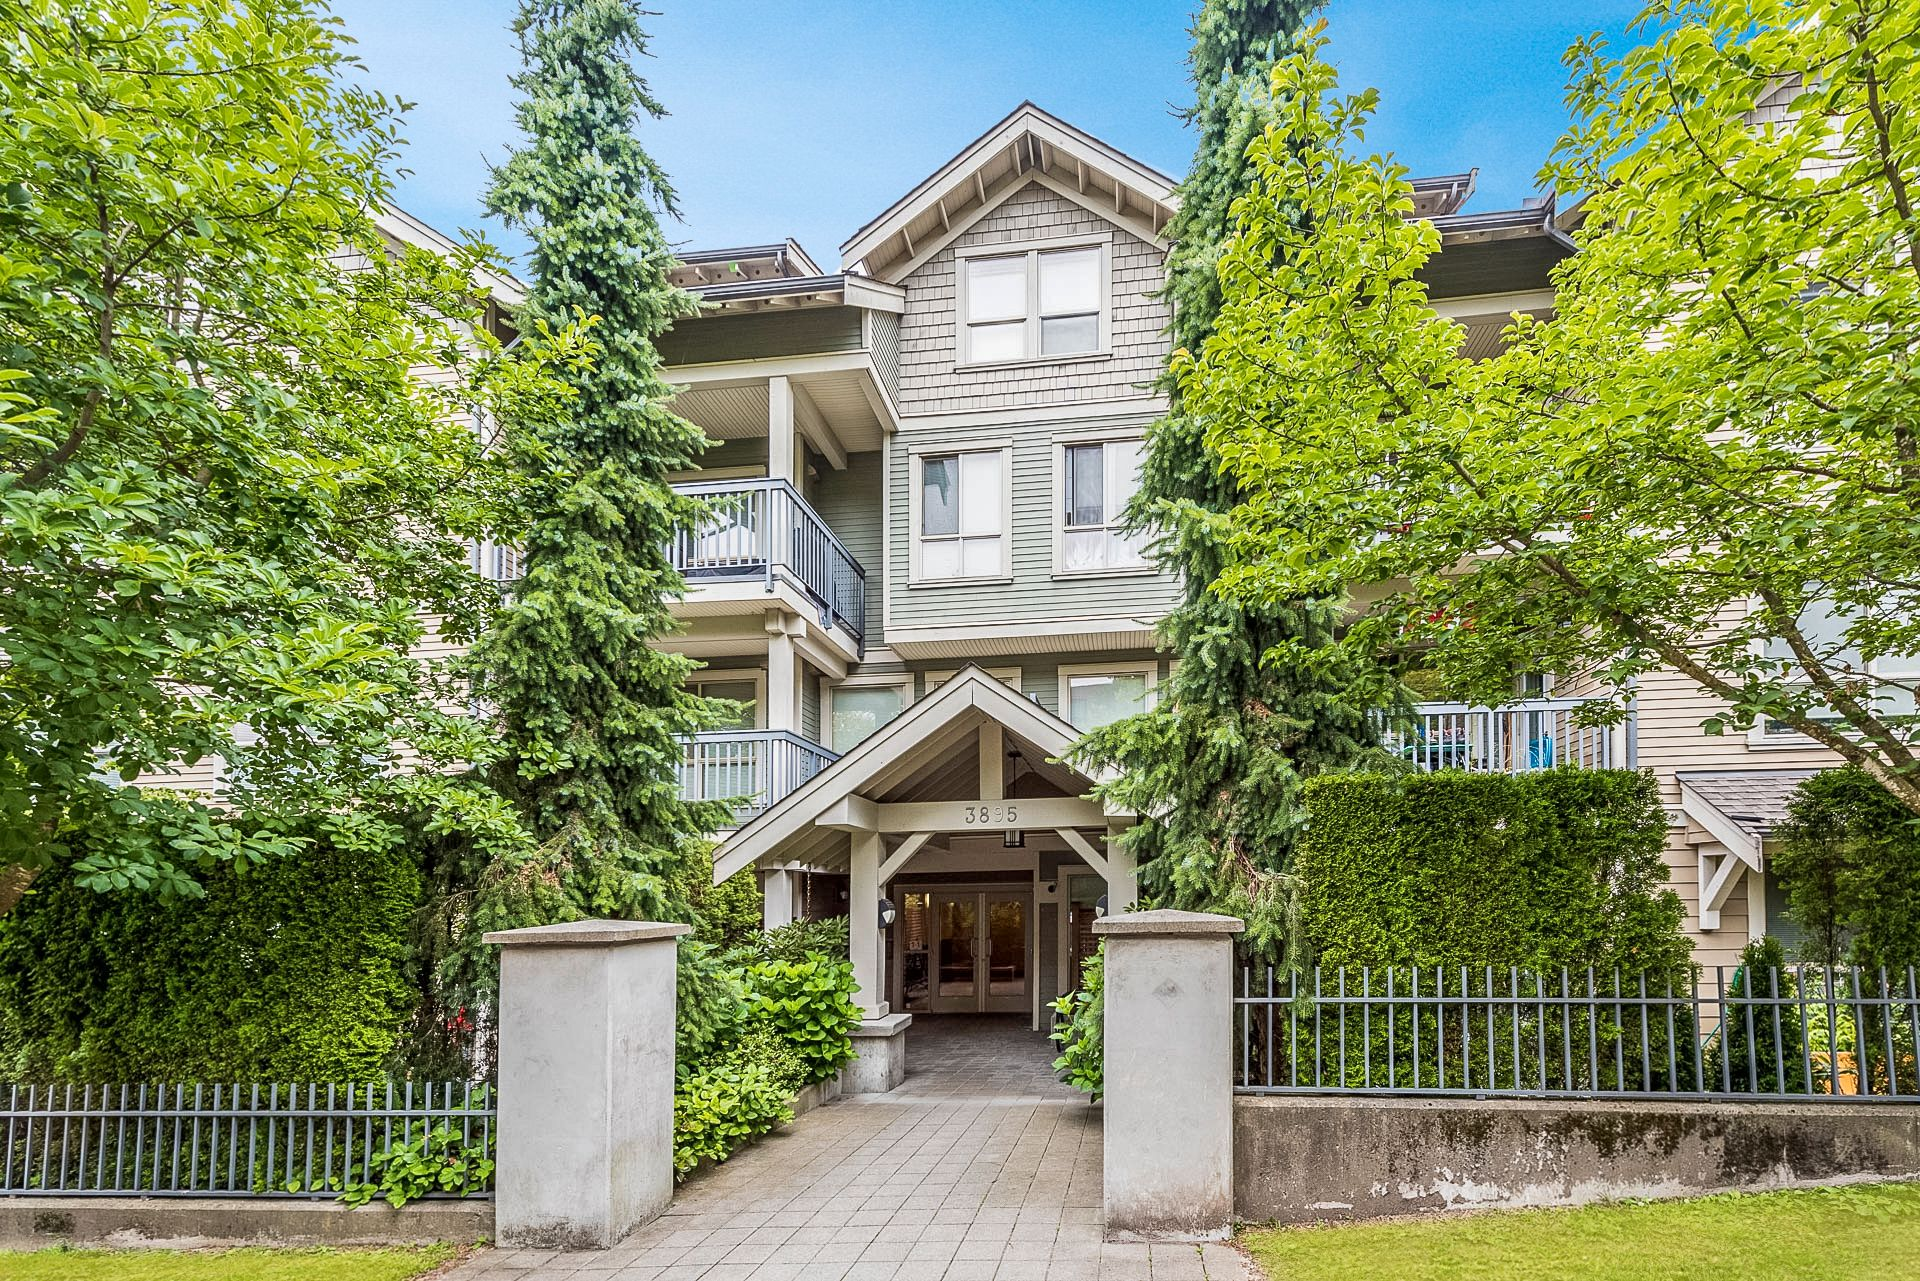 """Main Photo: 308 3895 SANDELL Street in Burnaby: Central Park BS Condo for sale in """"Clarke House Central Park"""" (Burnaby South)  : MLS®# R2287326"""